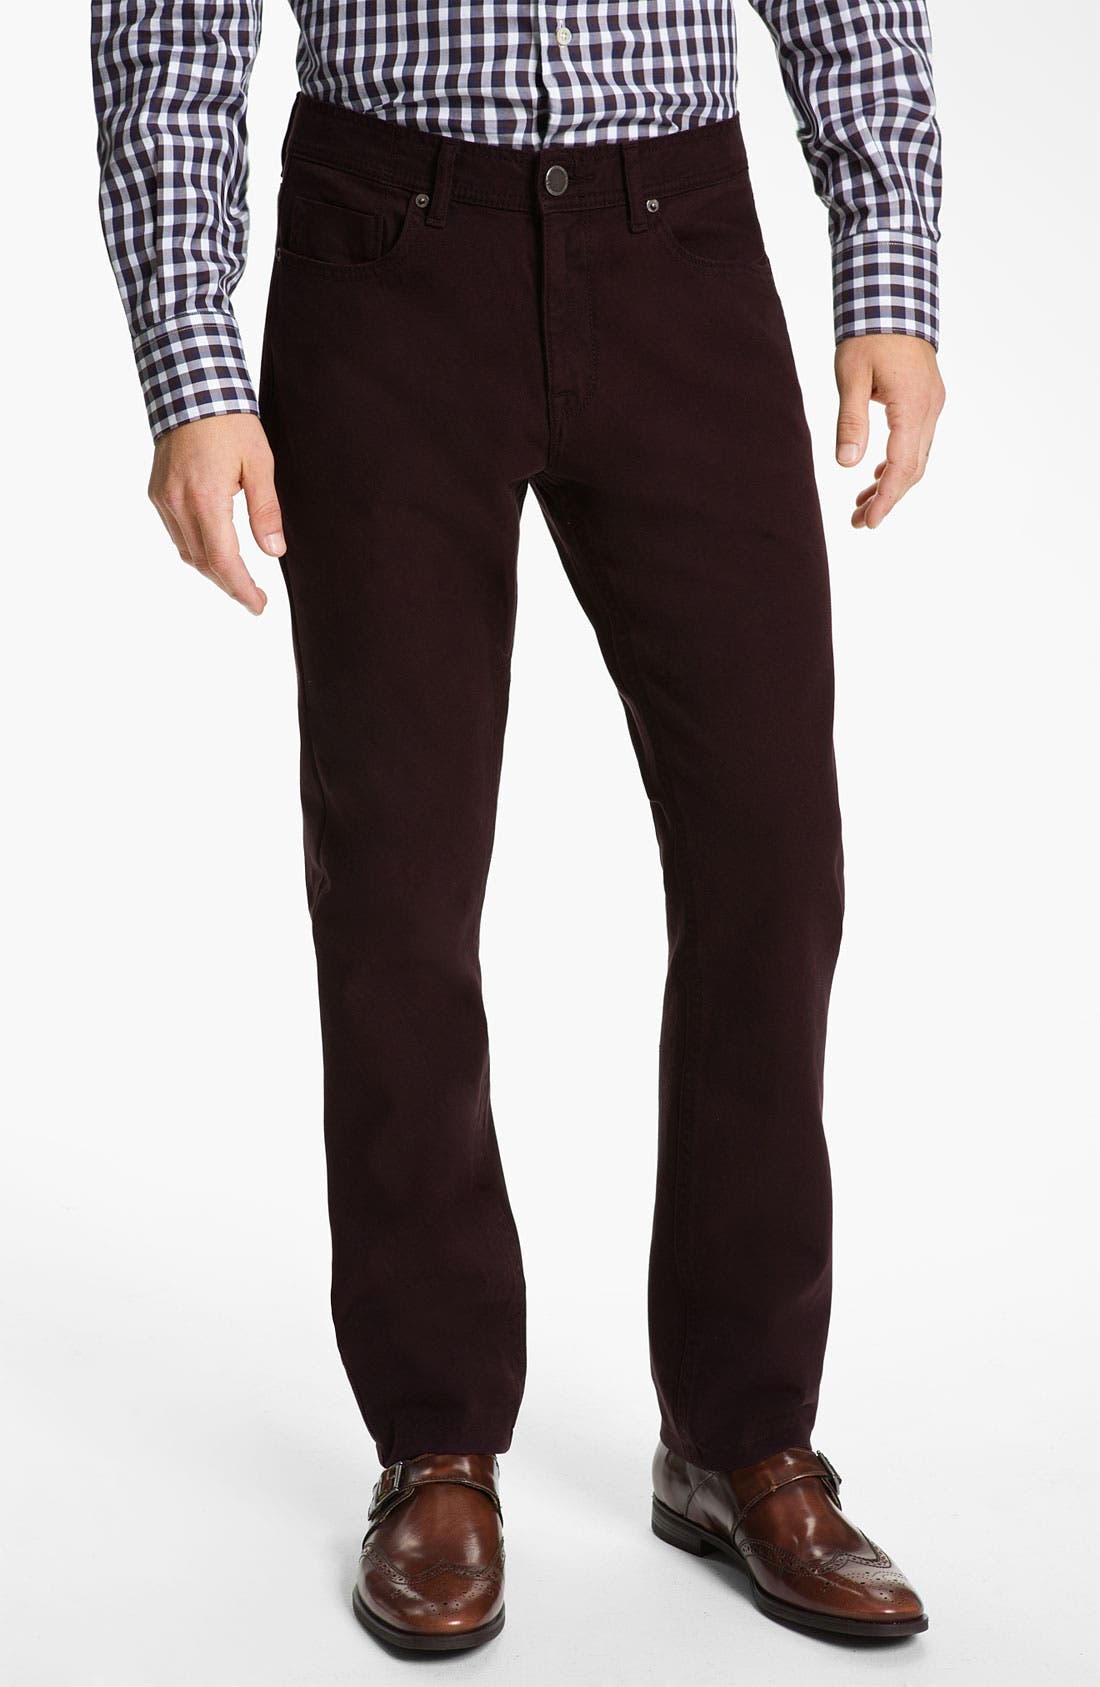 Alternate Image 1 Selected - DL1961 'Vince' Straight Leg Jeans (Redwood) (Online Only)